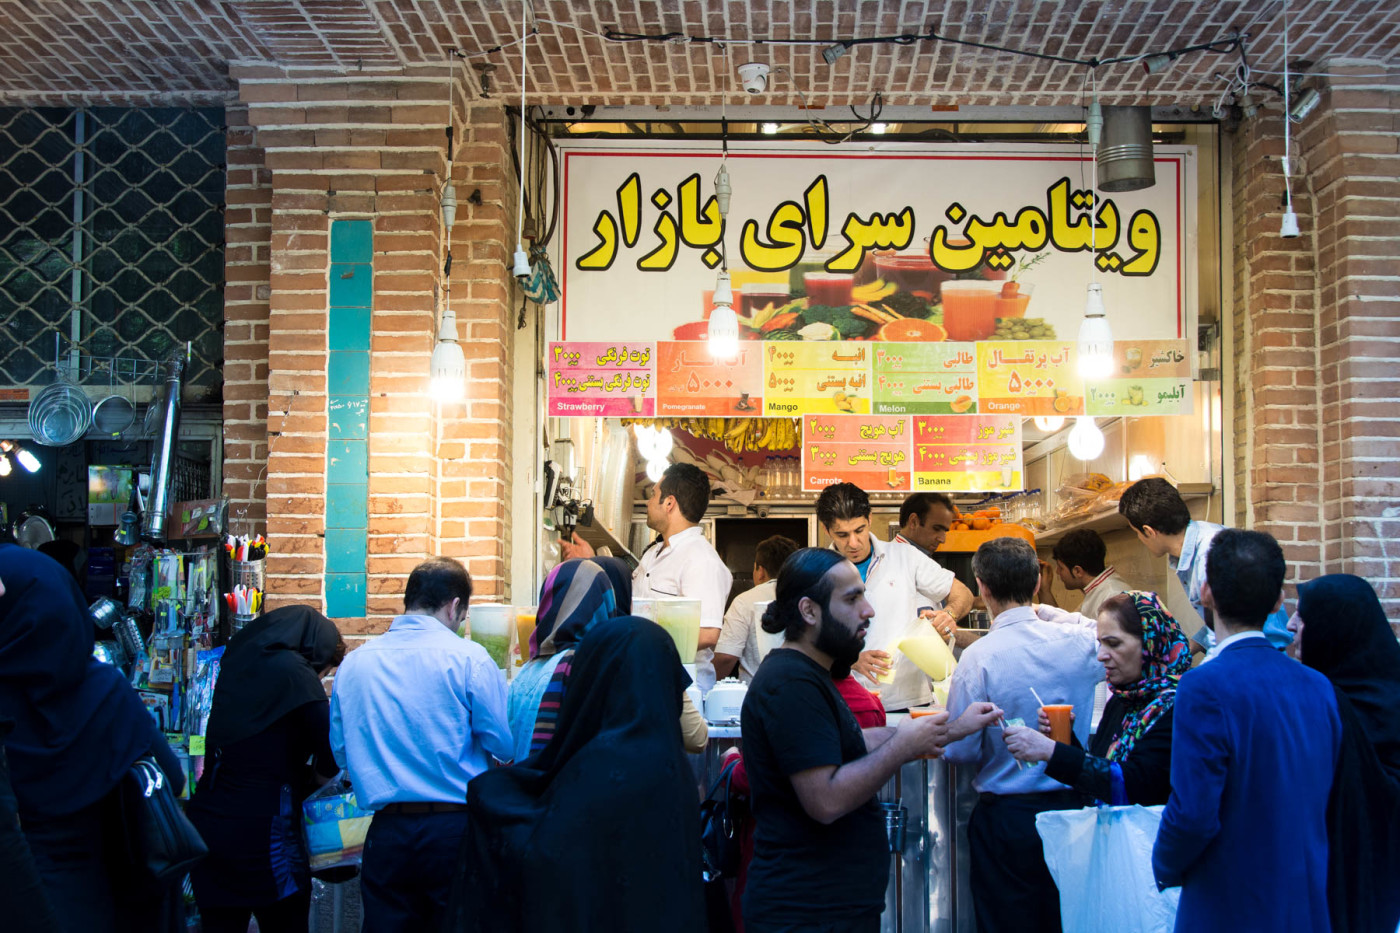 An important aspect of Iranian culture: an addiction to all things blended and delicious!